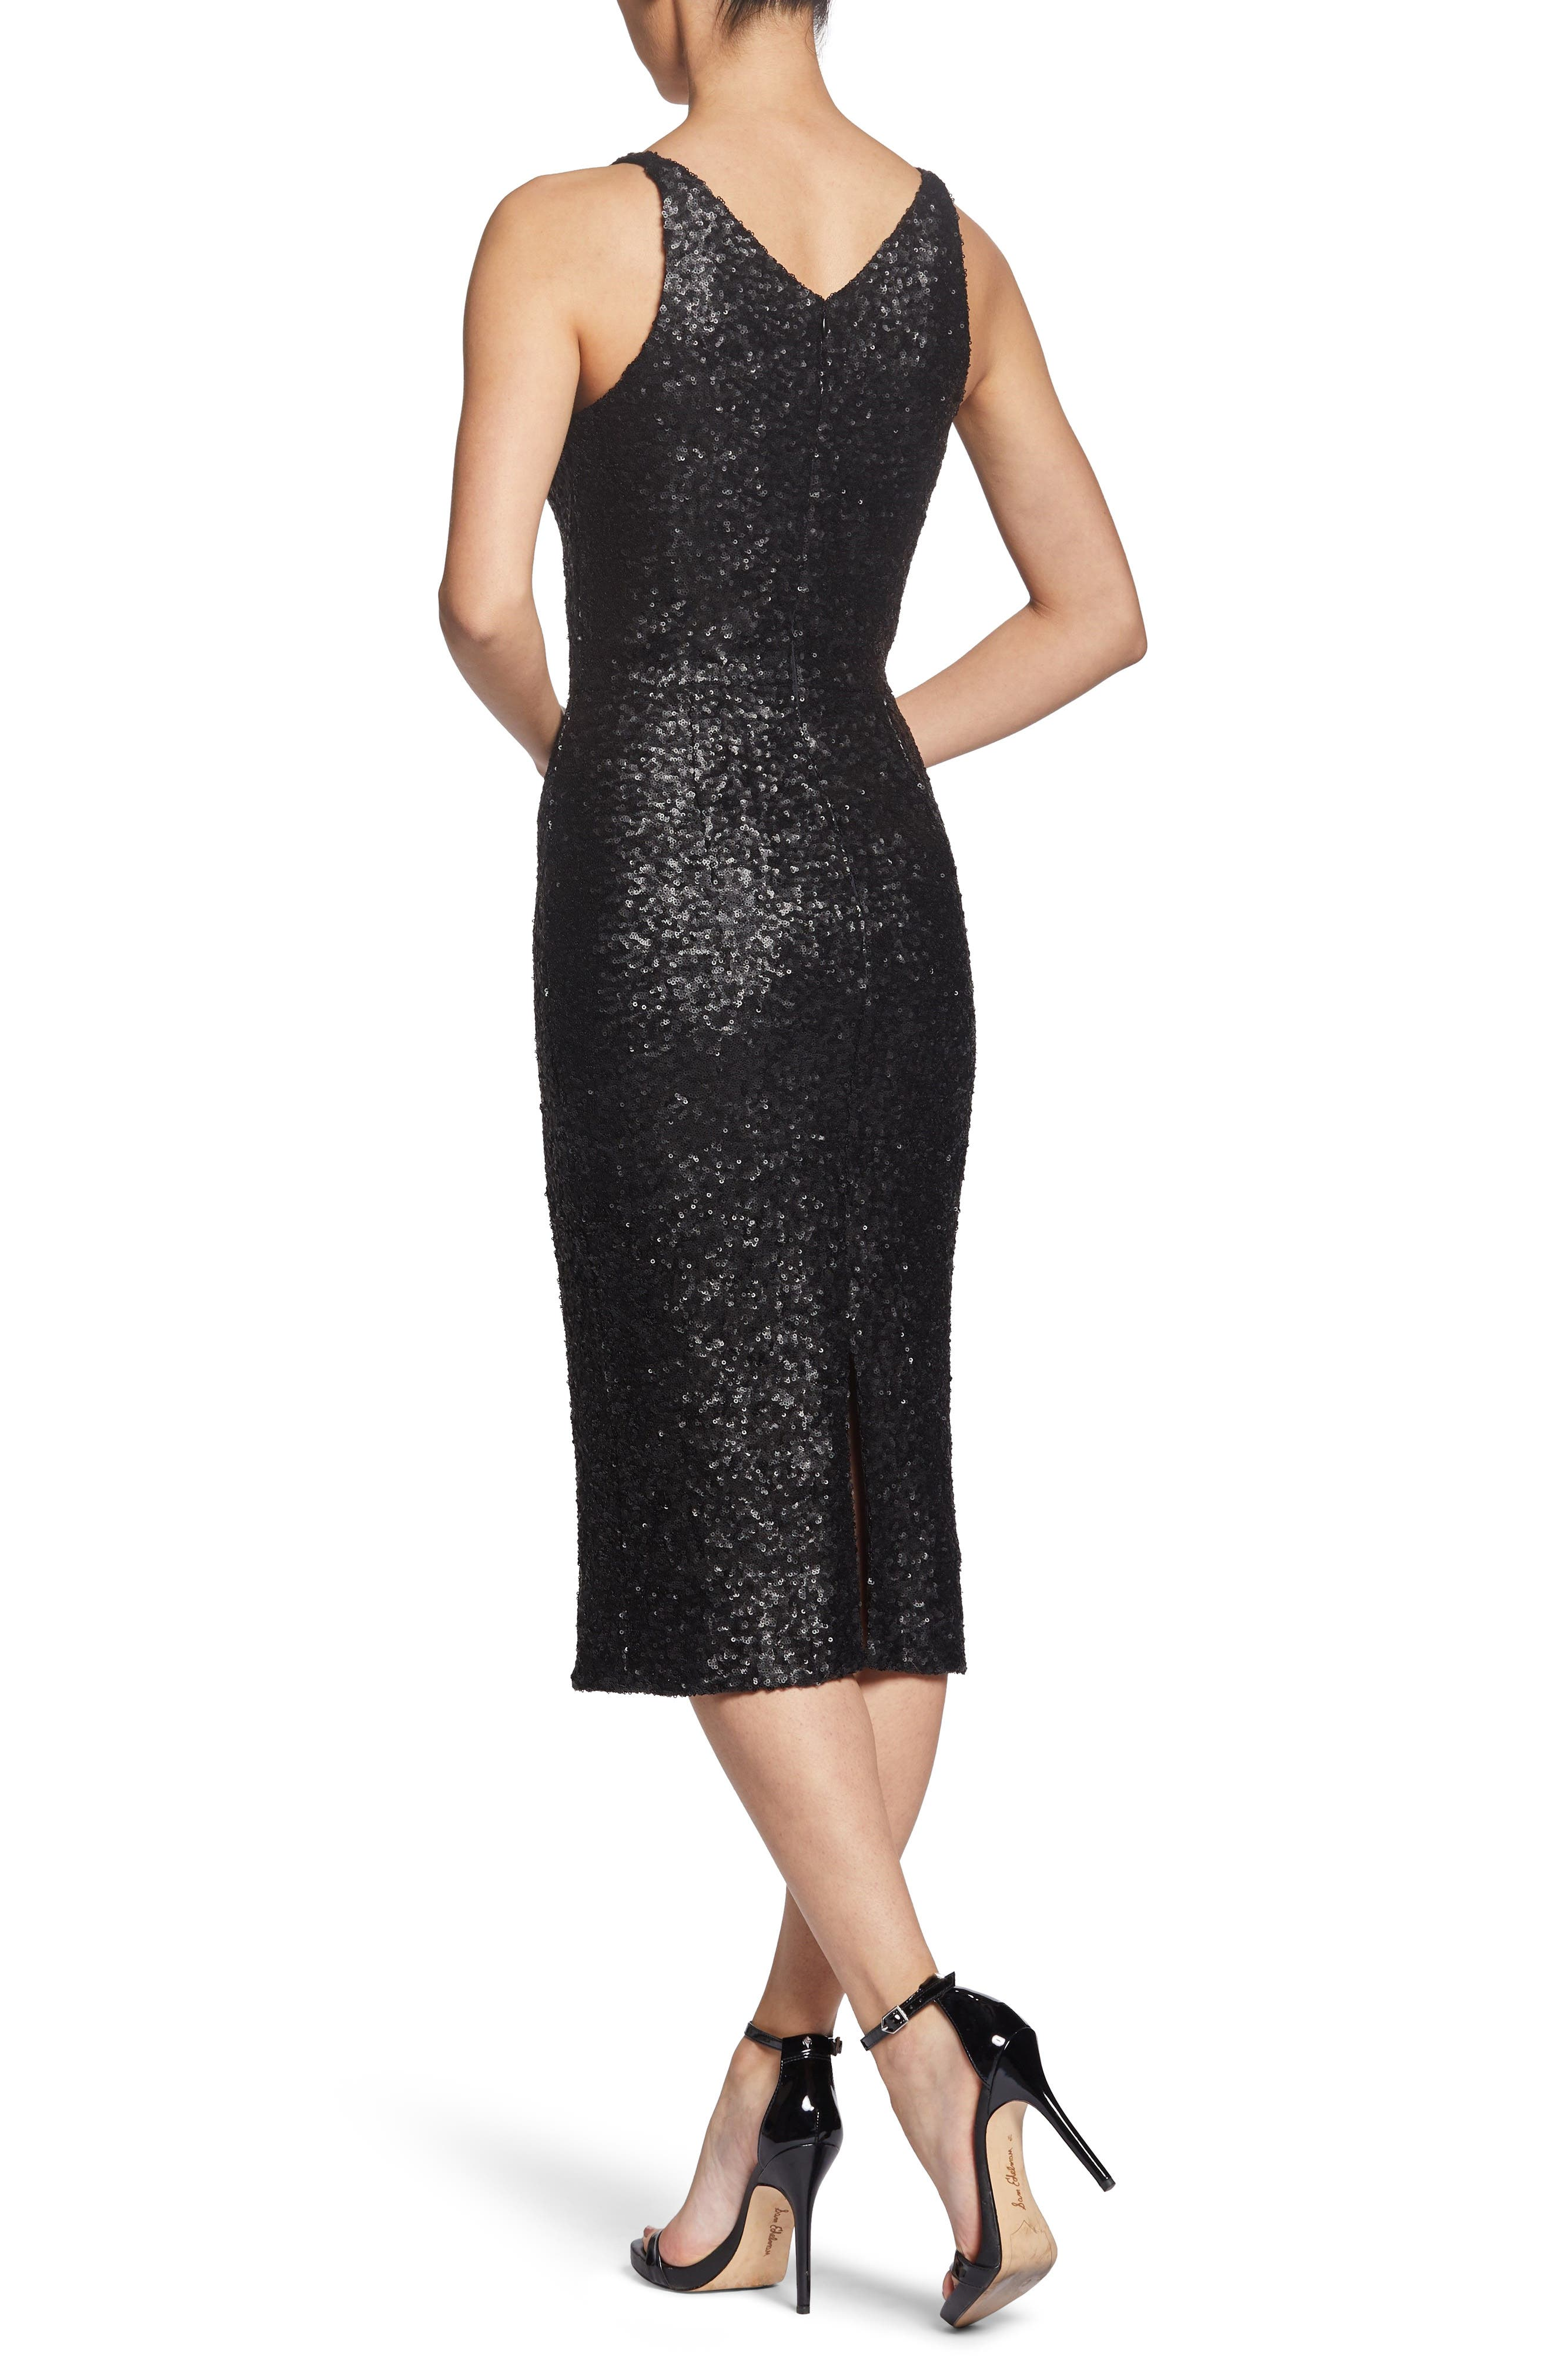 Camilla Plunging Sequin Sheath Dress,                             Alternate thumbnail 2, color,                             008